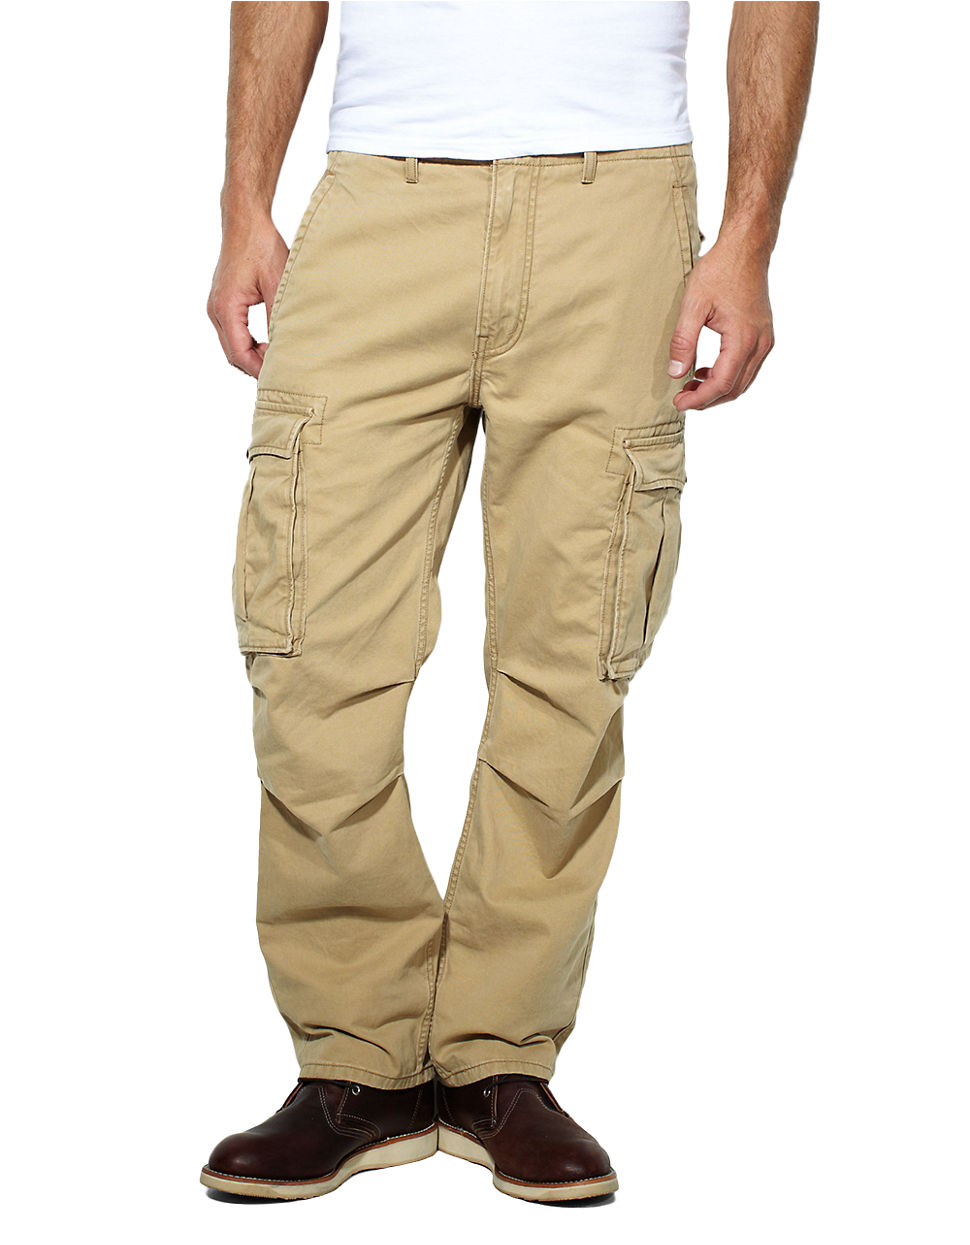 gold cargo pants - Pi Pants